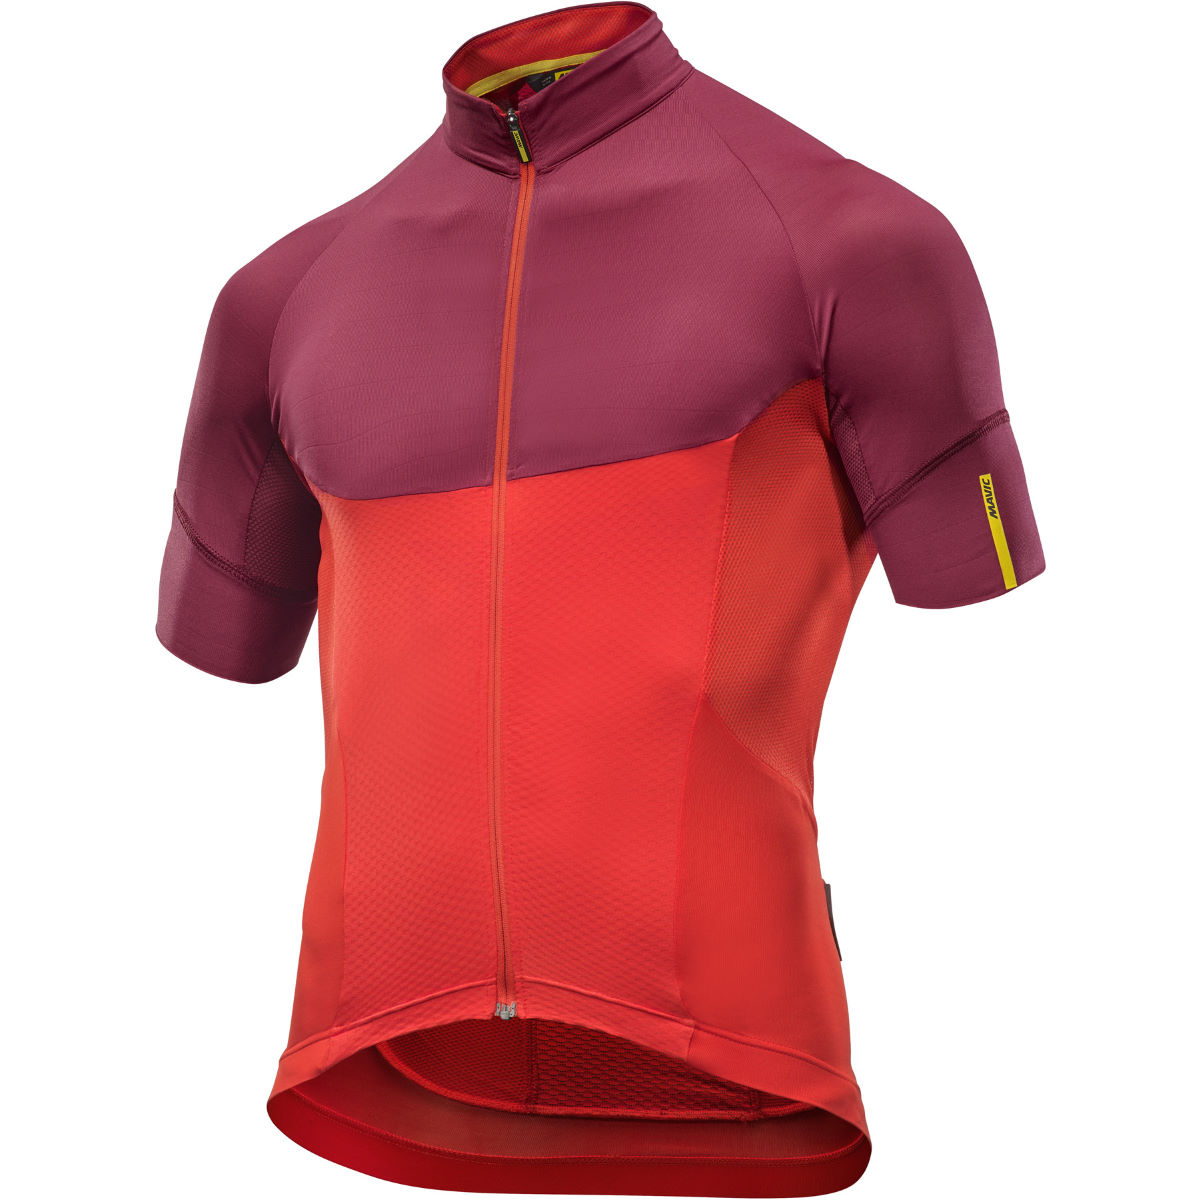 Maillot Mavic Ksyrium Pro - XL Fiery Red/Tibetan Re Maillots vélo à manches courtes